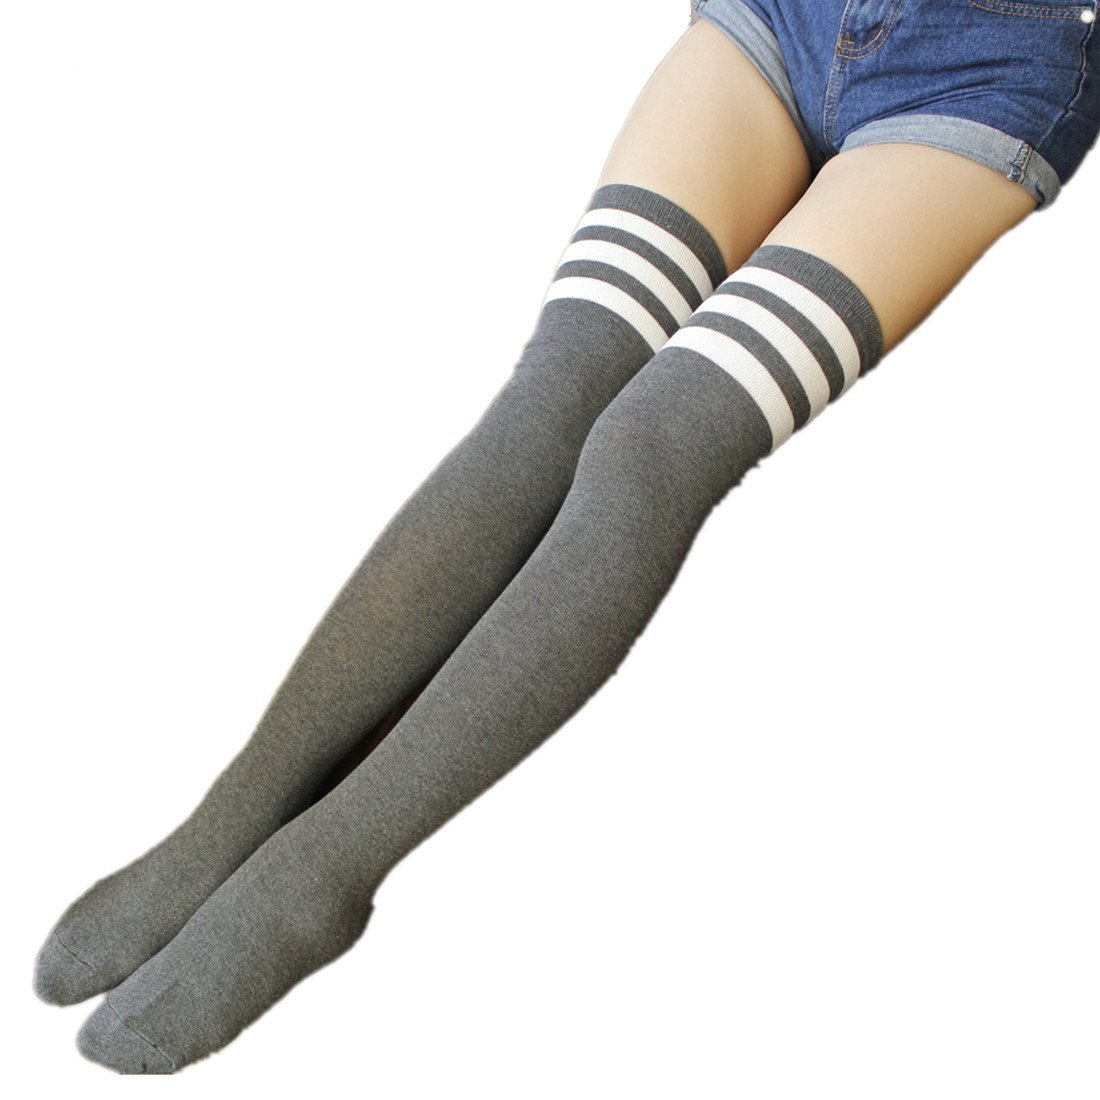 Womens Over Knee Stripe Socks Girls Thigh High Long Cosplay Socks Black White by Azue (Image #4)